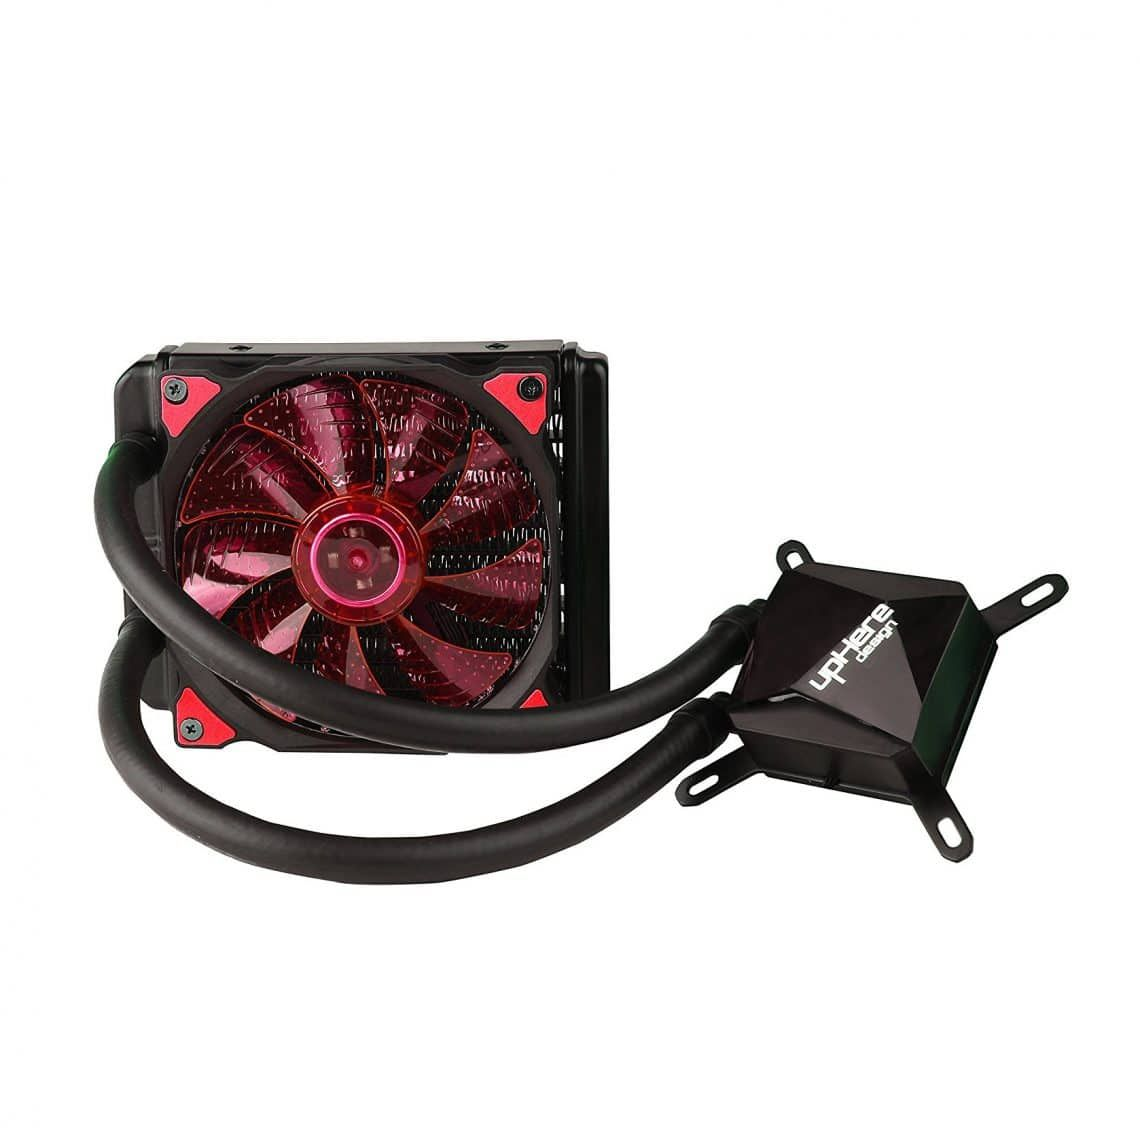 Uphere Technology All In One High Performance Liquid Cpu Cooler